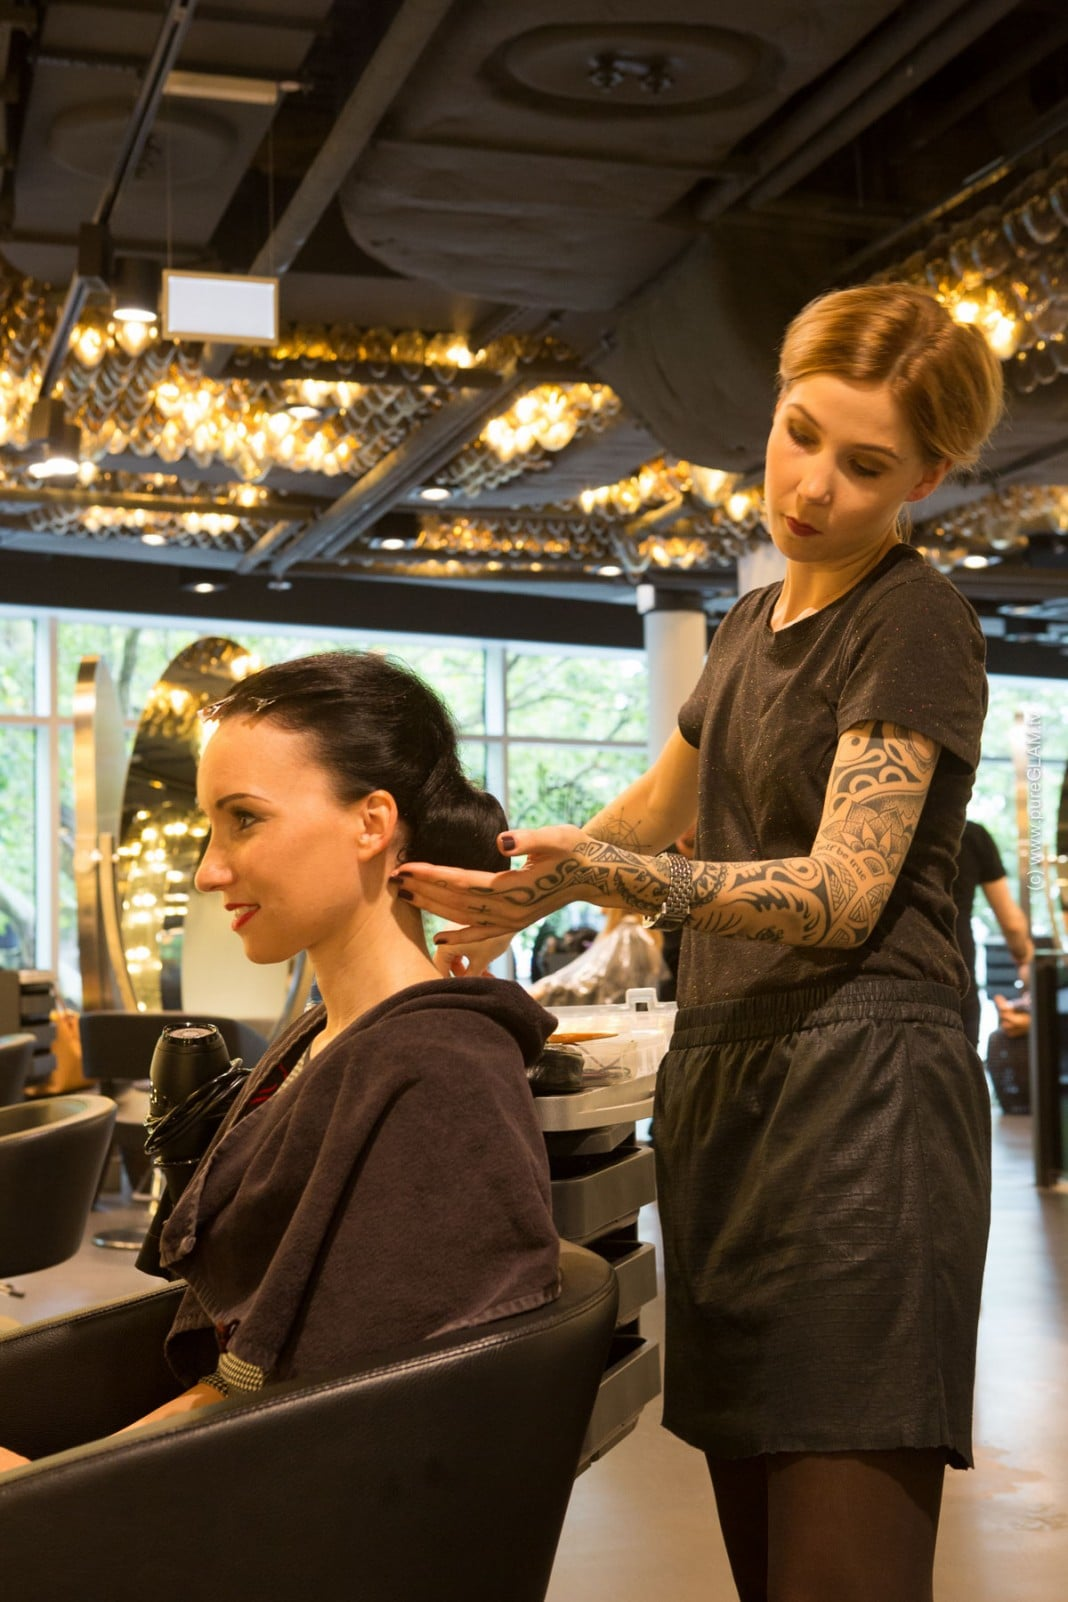 Fashionblog Update - Shan Rahimkhan - Hair Styling - Berlin - Frisuren und Makeup - Shan's Kitchen - Ob Kurfürstendamm oder Gendarmen Markt in Berlin - neu das